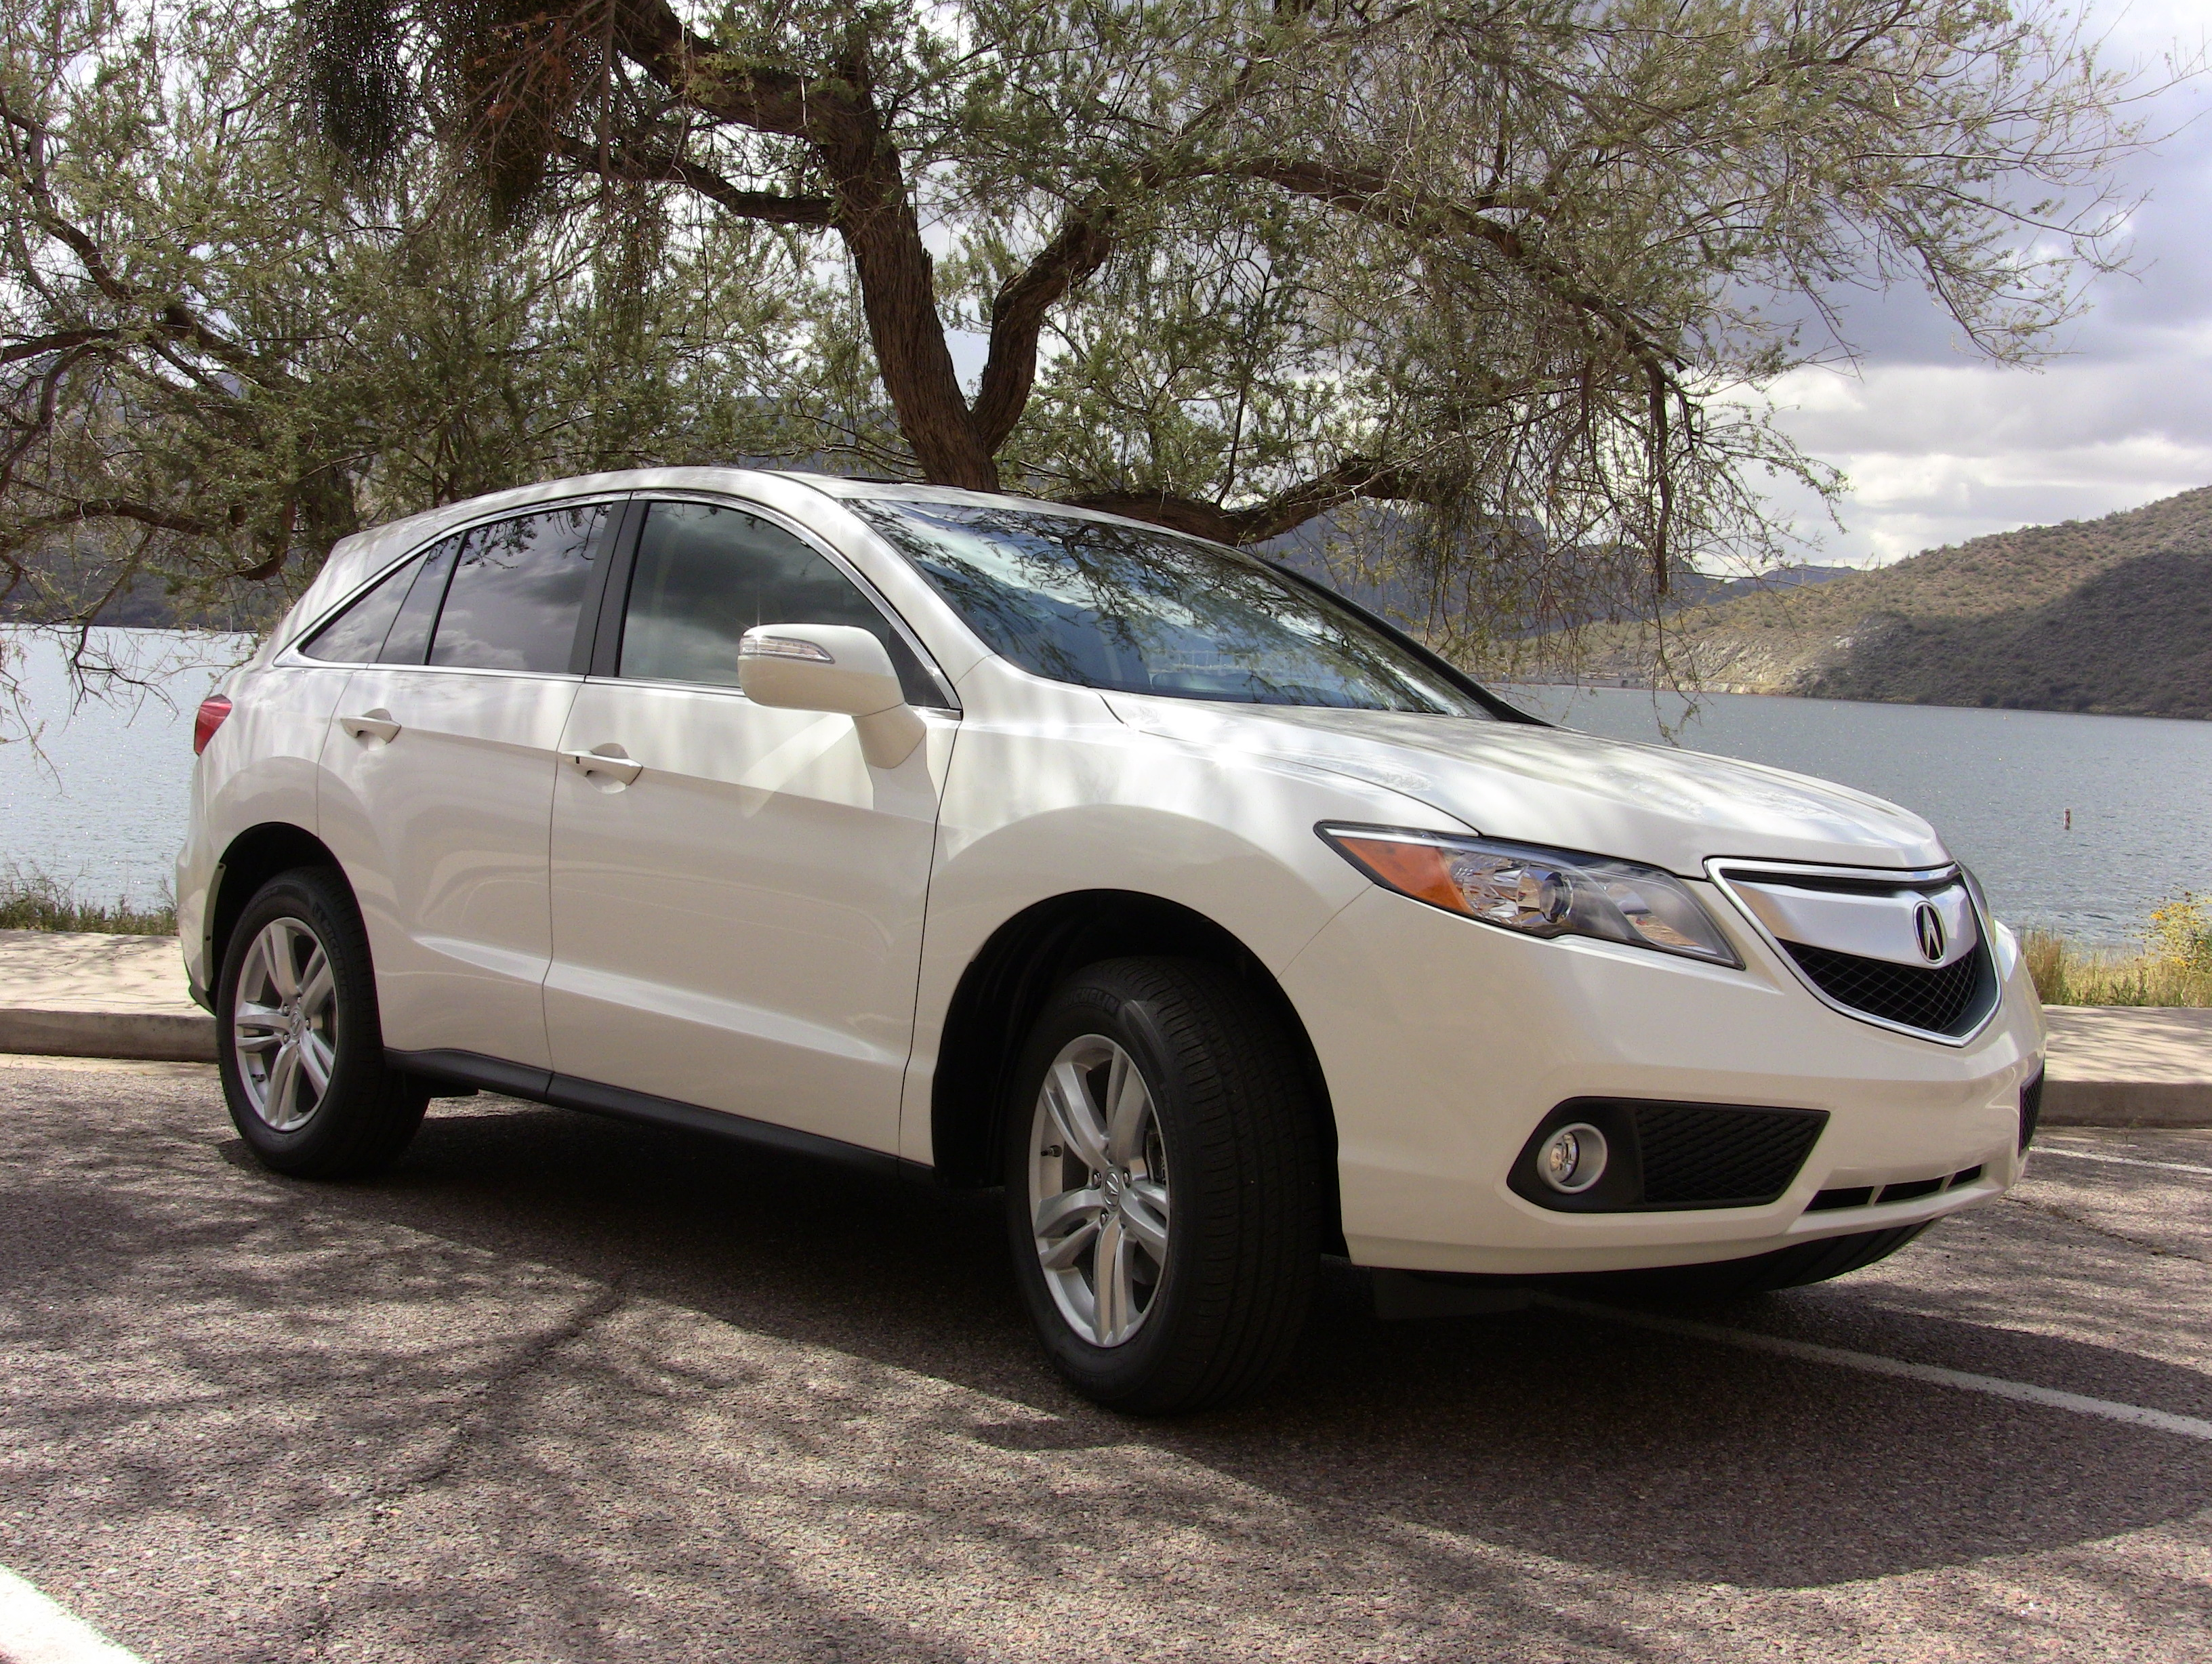 Rdx 2013 Manual The 2013 Acura Rdx is All New